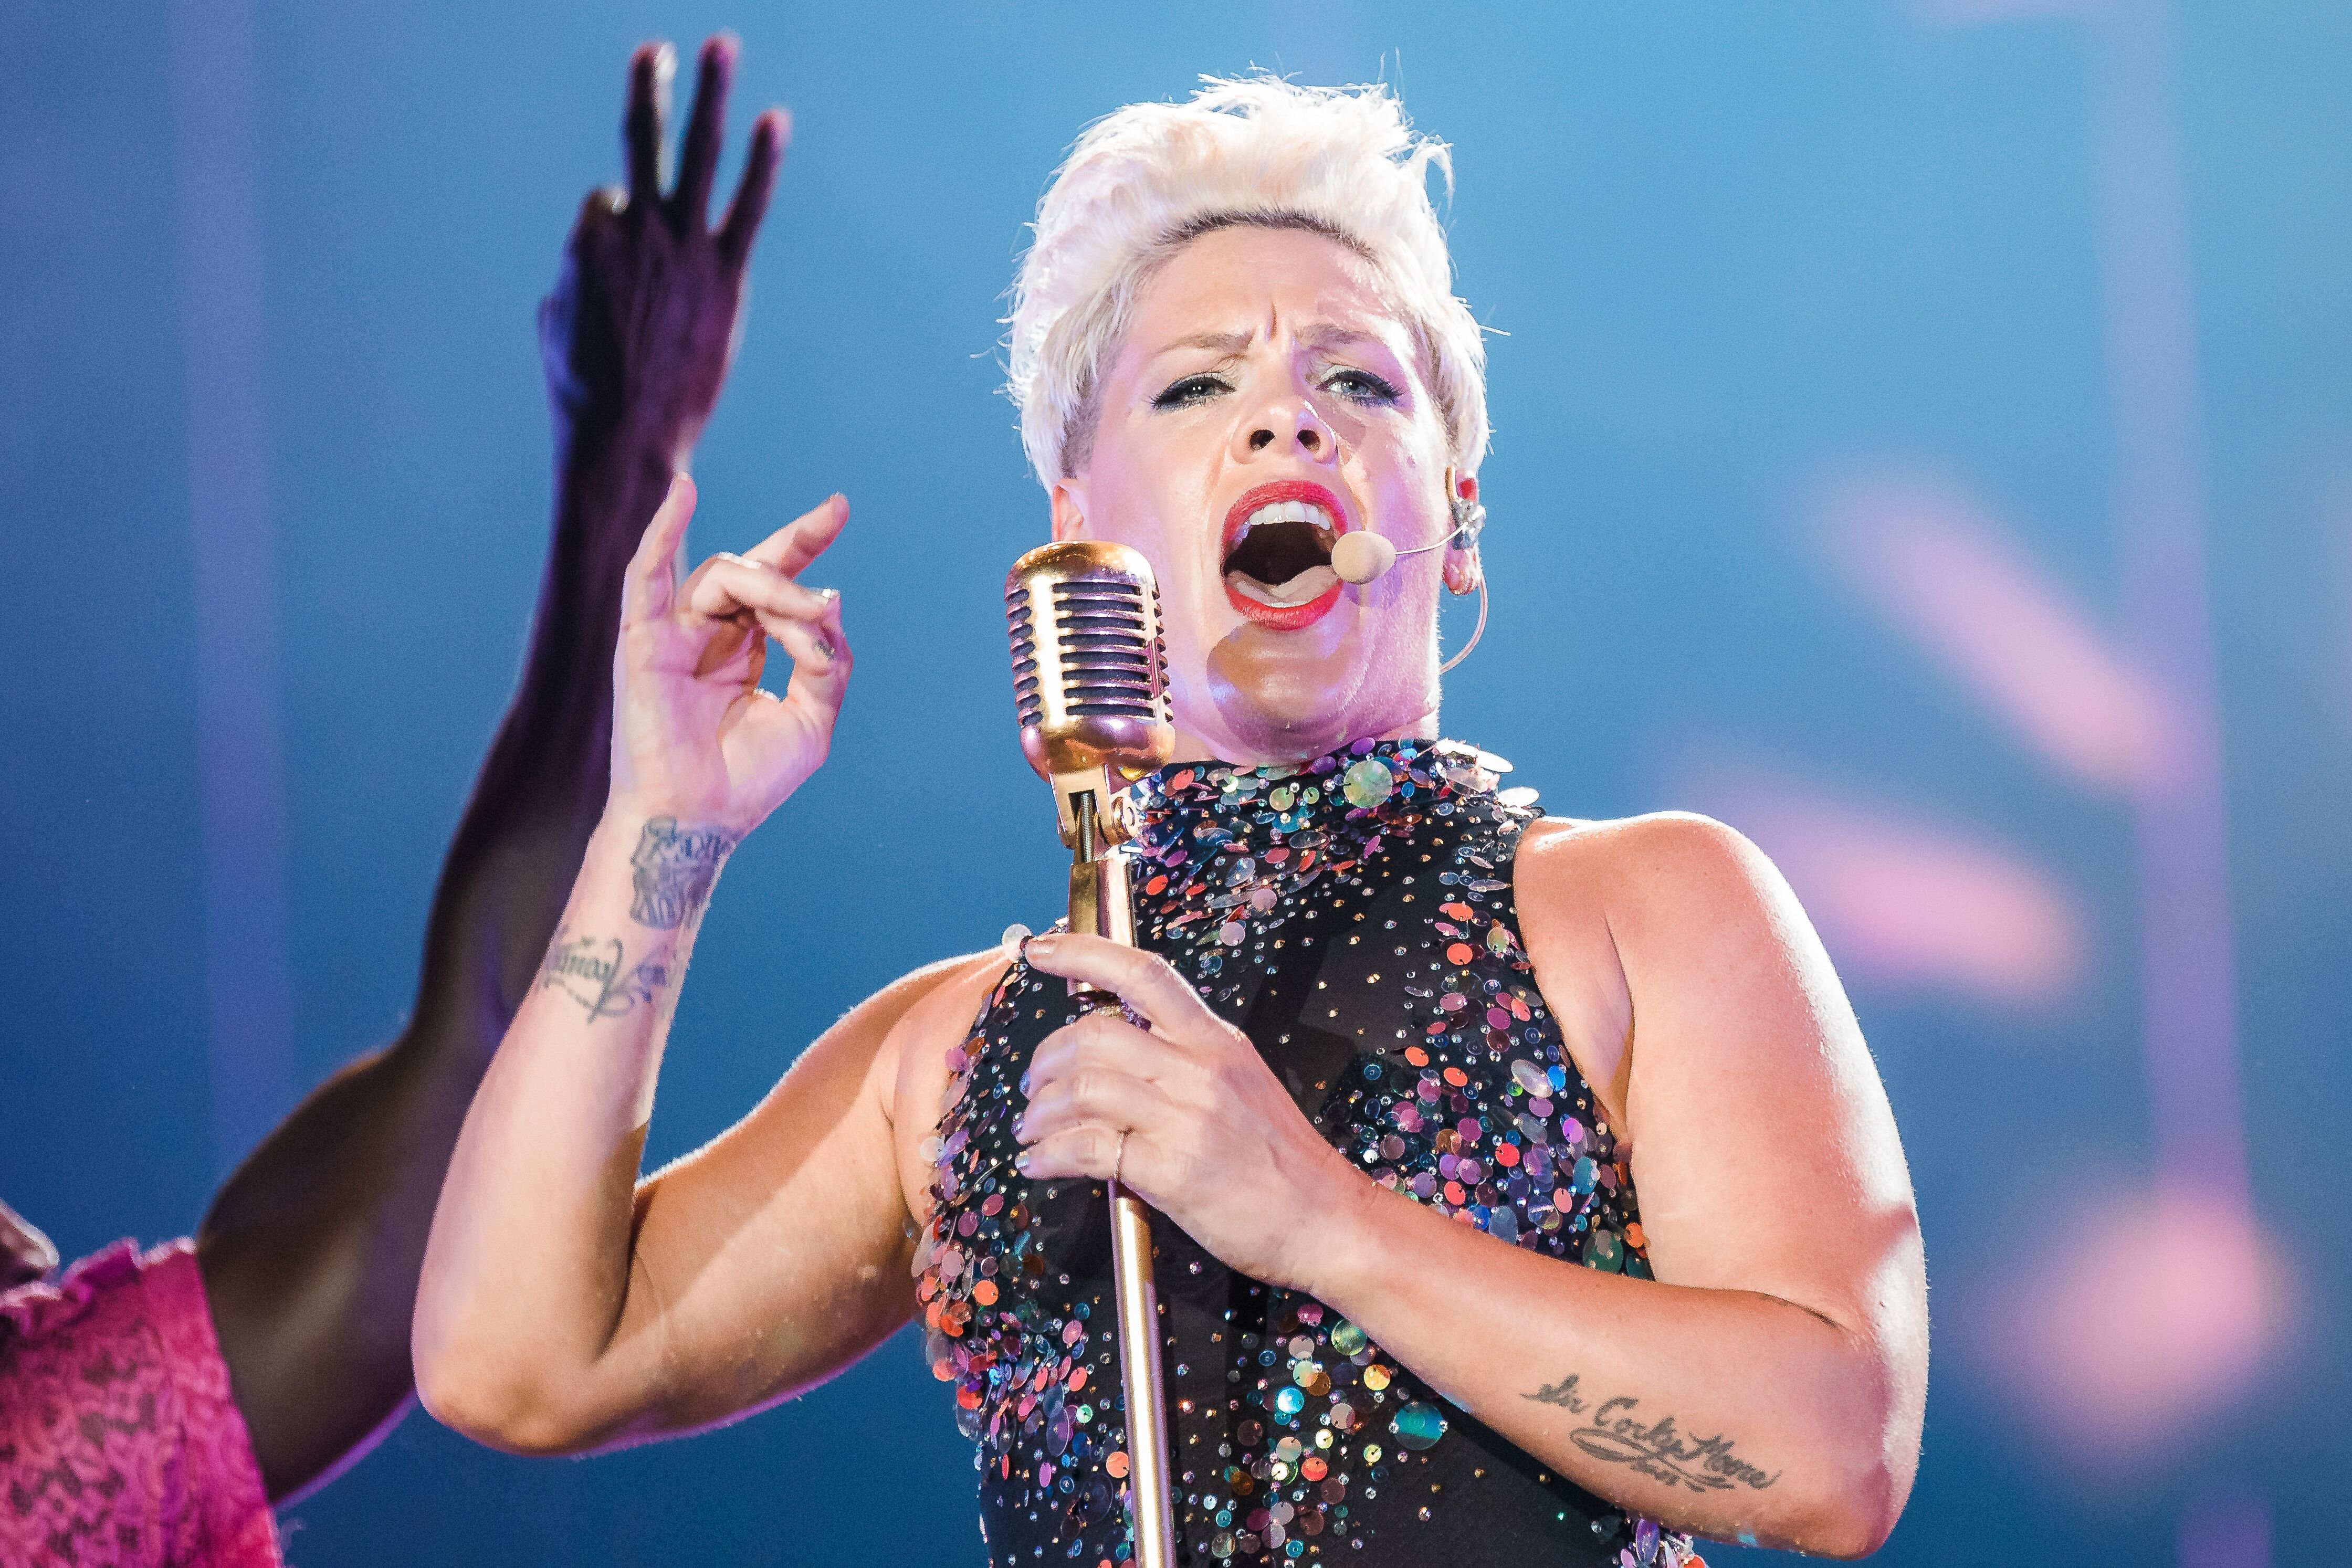 Pink performs live on stage during day 6 of Rock In Rio Music Festival at Cidade do Rock on October 5, 2019 in Rio de Janeiro, Brazil.   Source: Getty Images